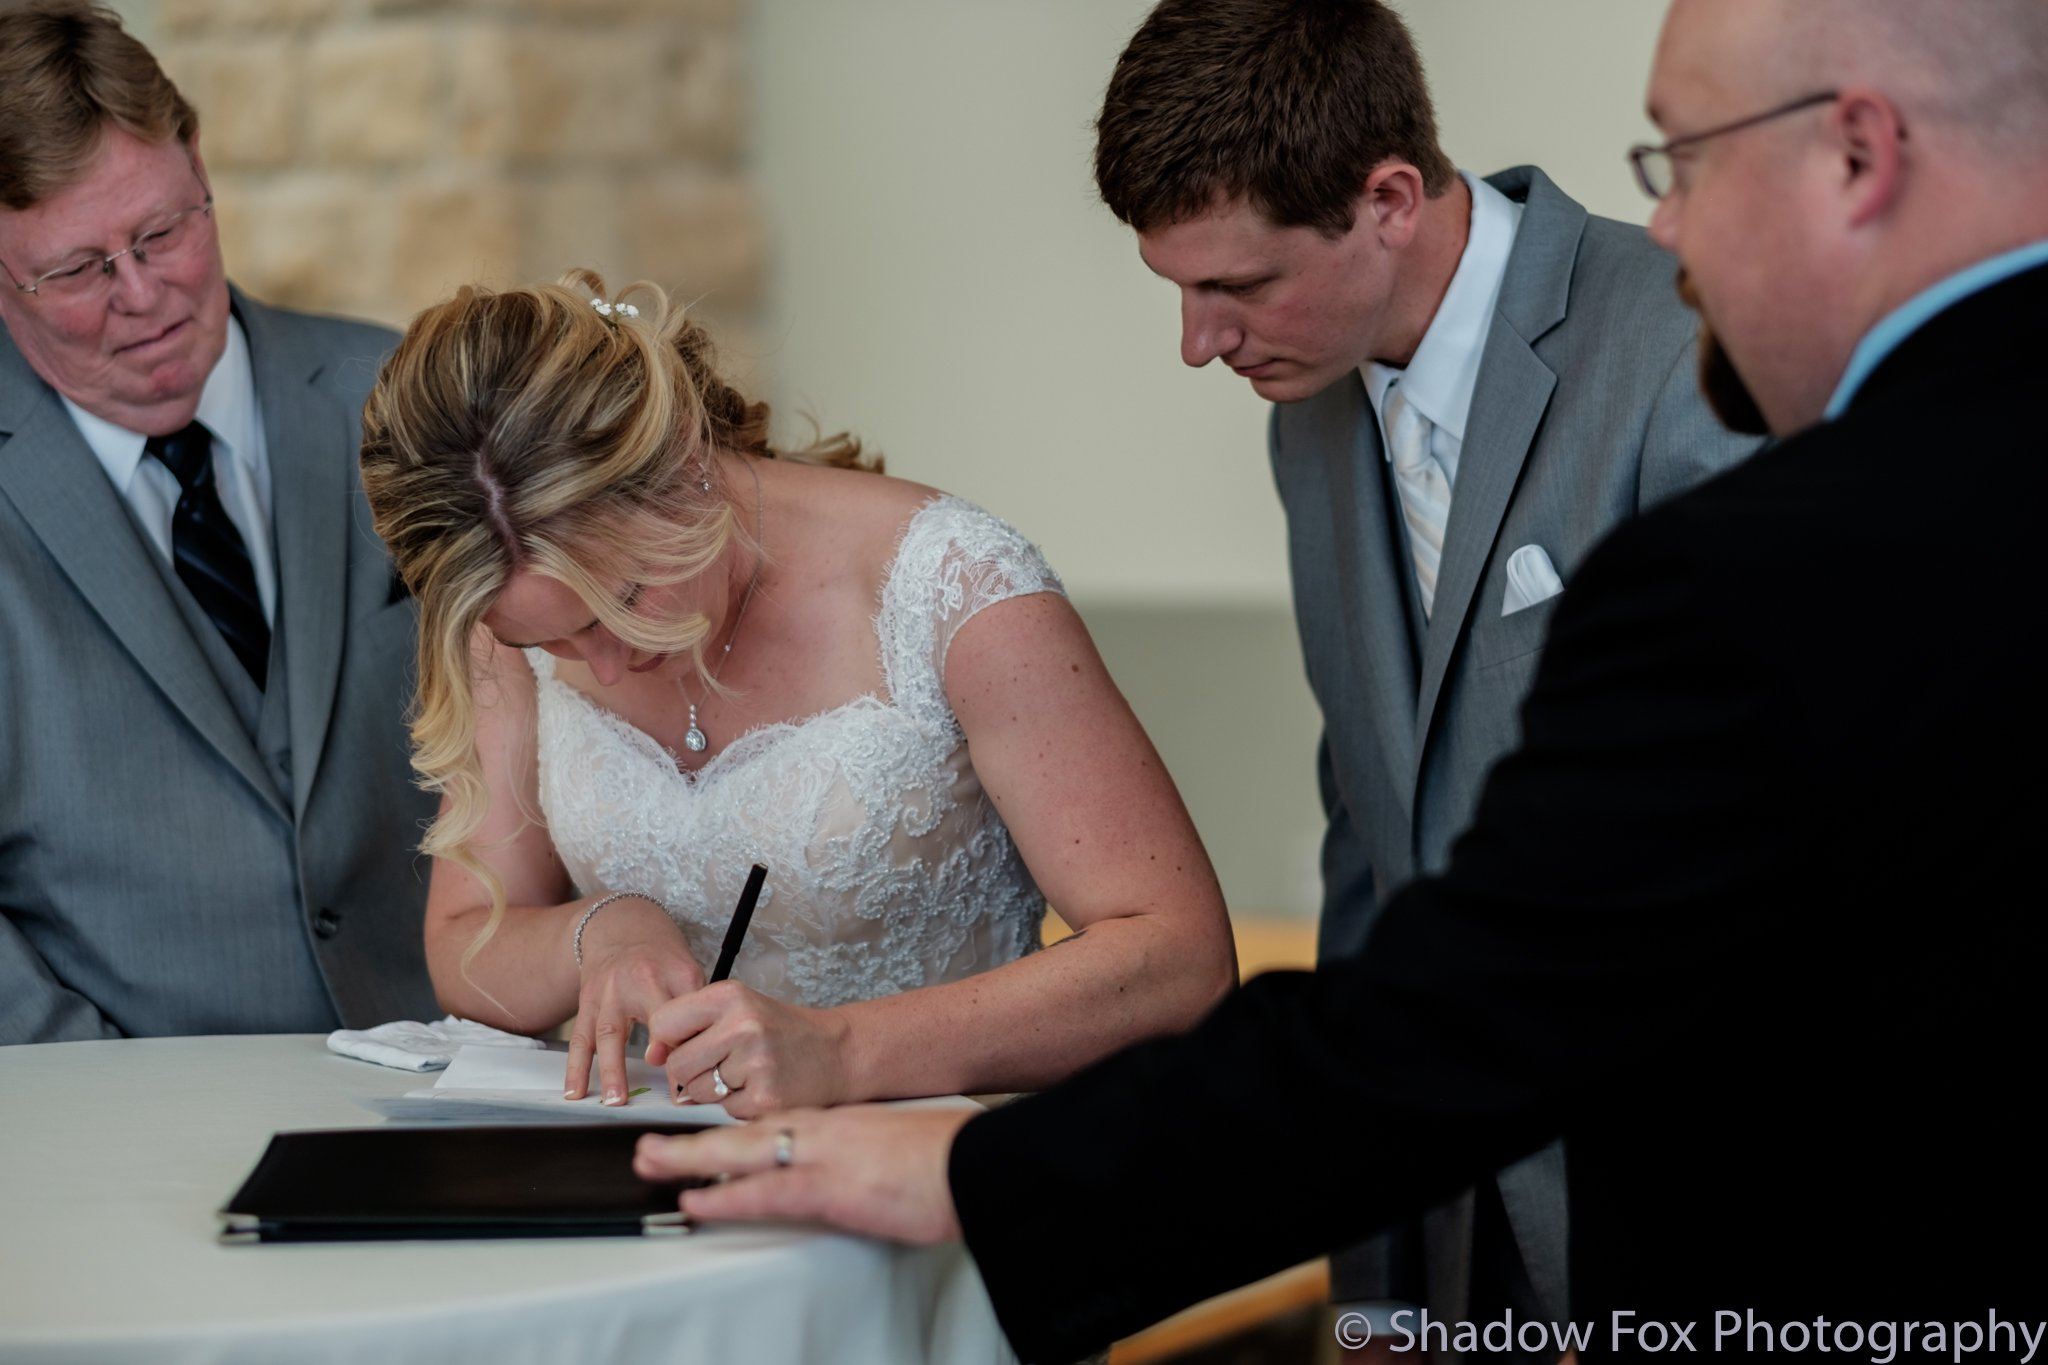 Bride and groom signing wedding certificate after their ceremony